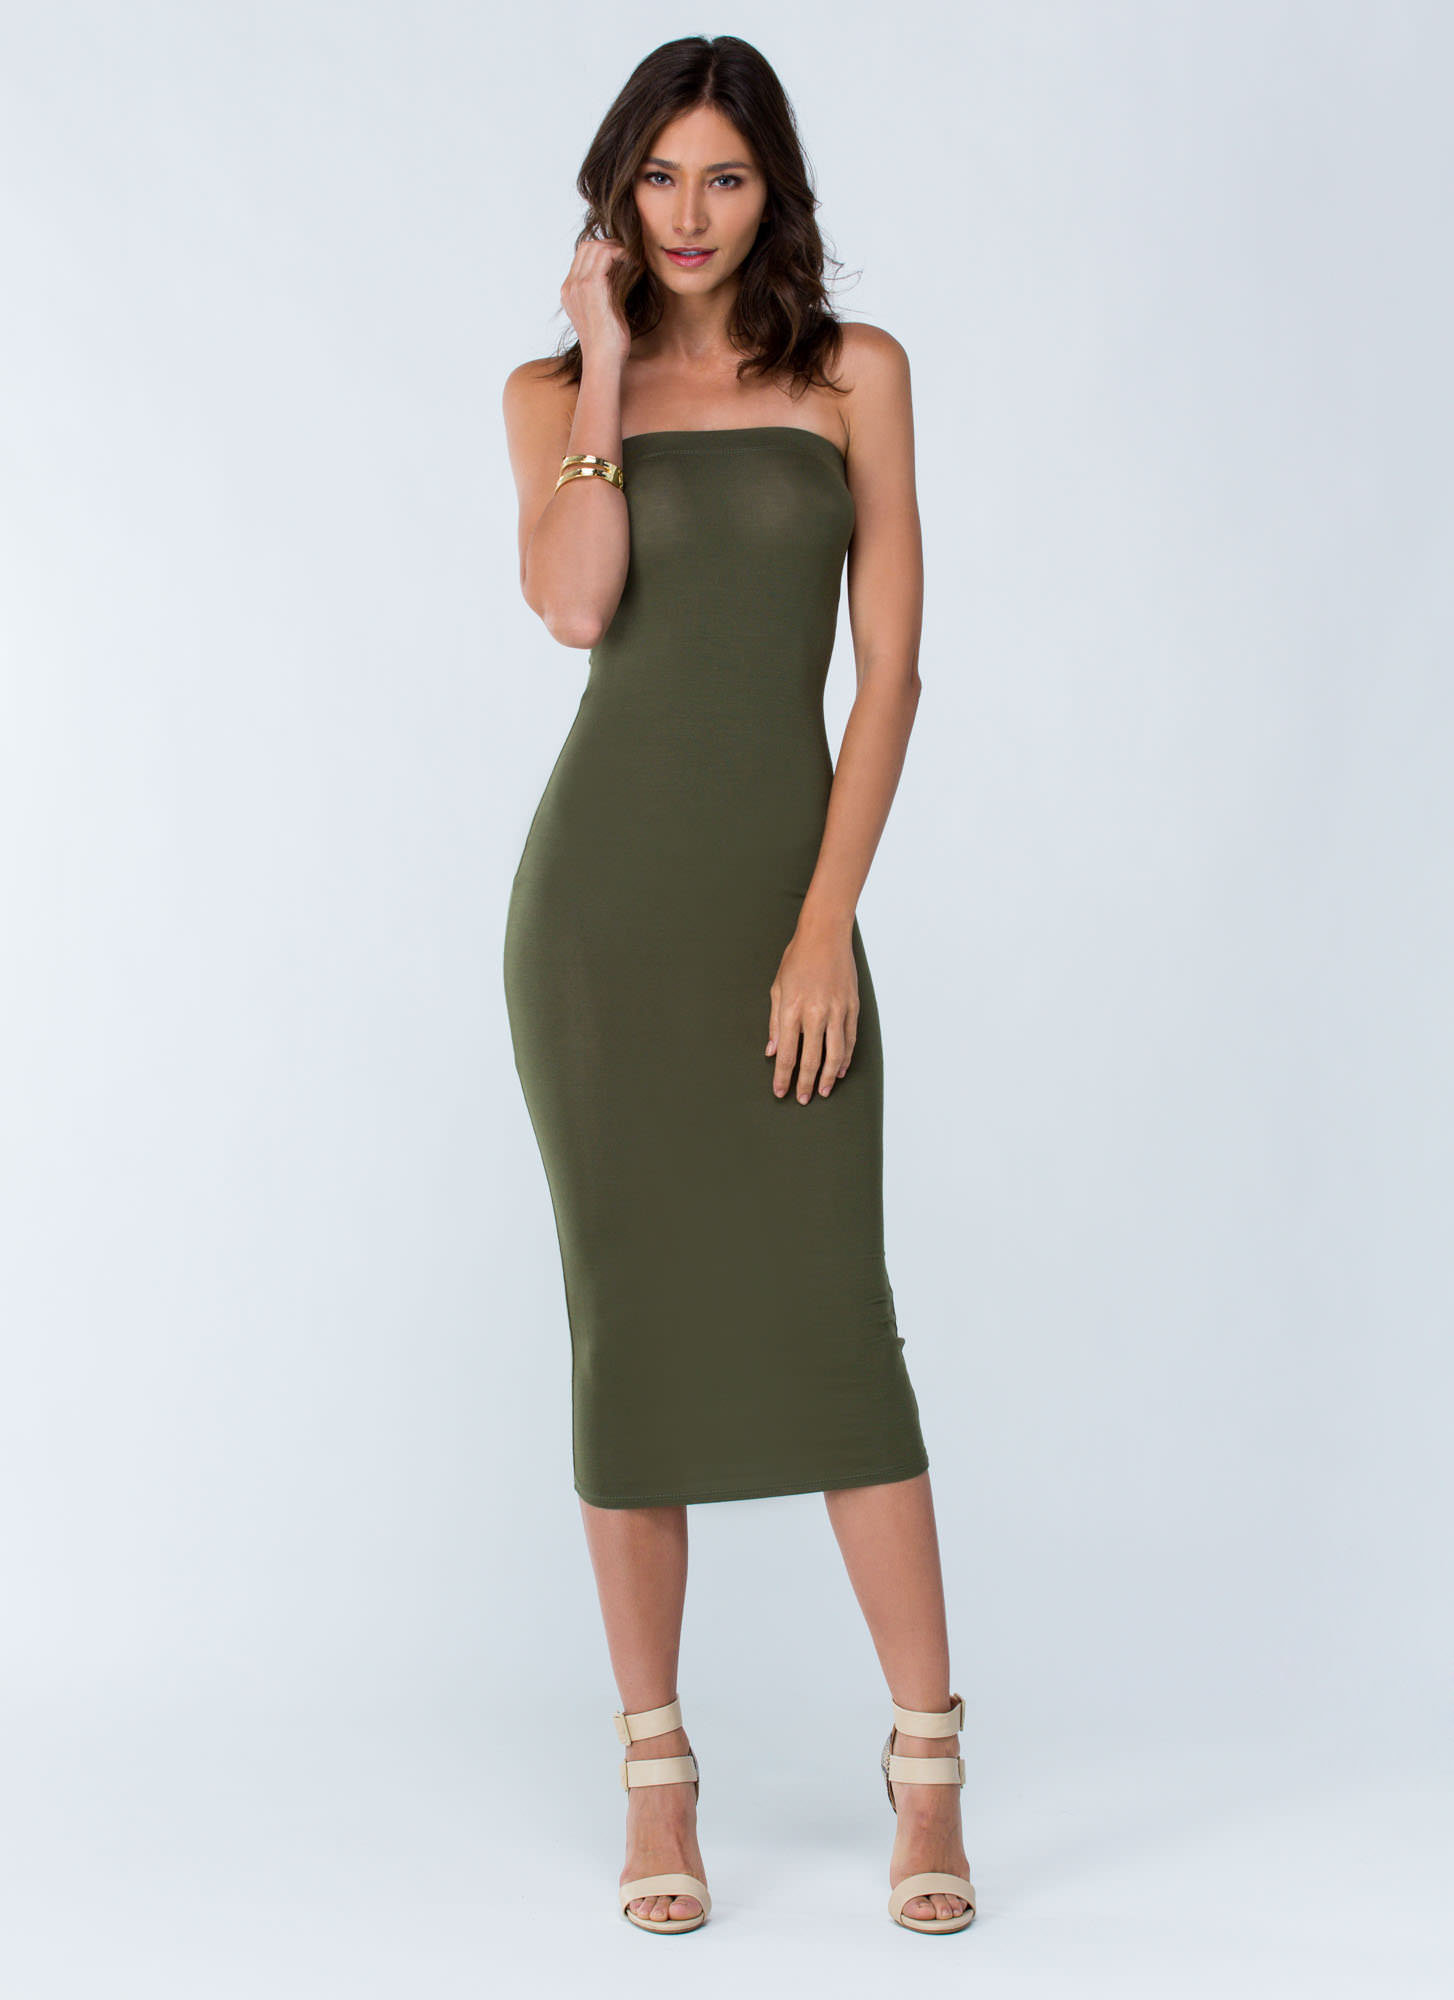 Keep It Simple Tube Midi Dress Yellow Nude Olive Black